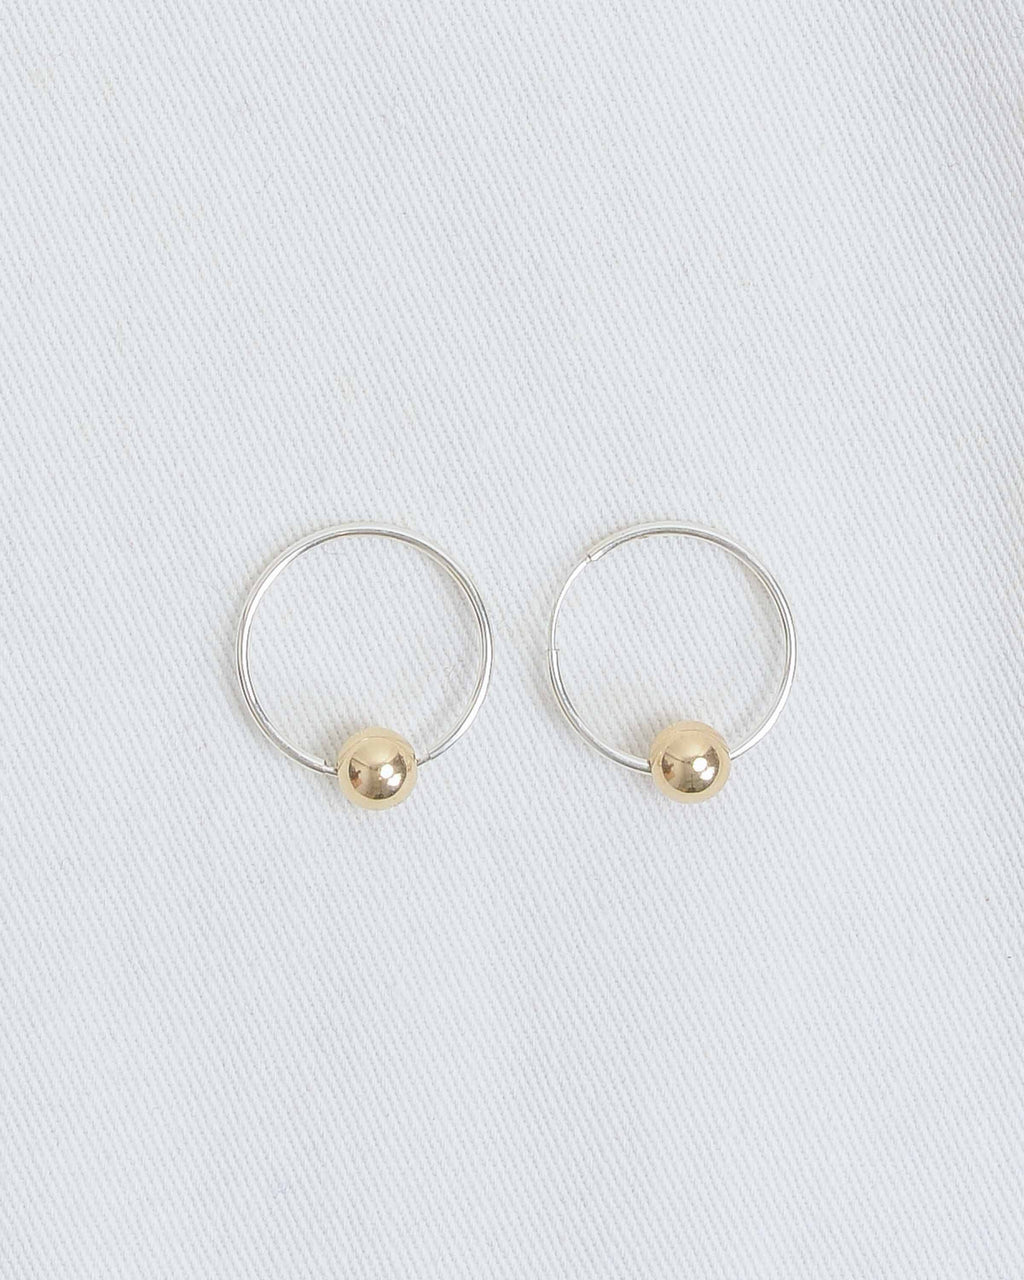 Gold Small Ball with Sterling Silver Small Hoops